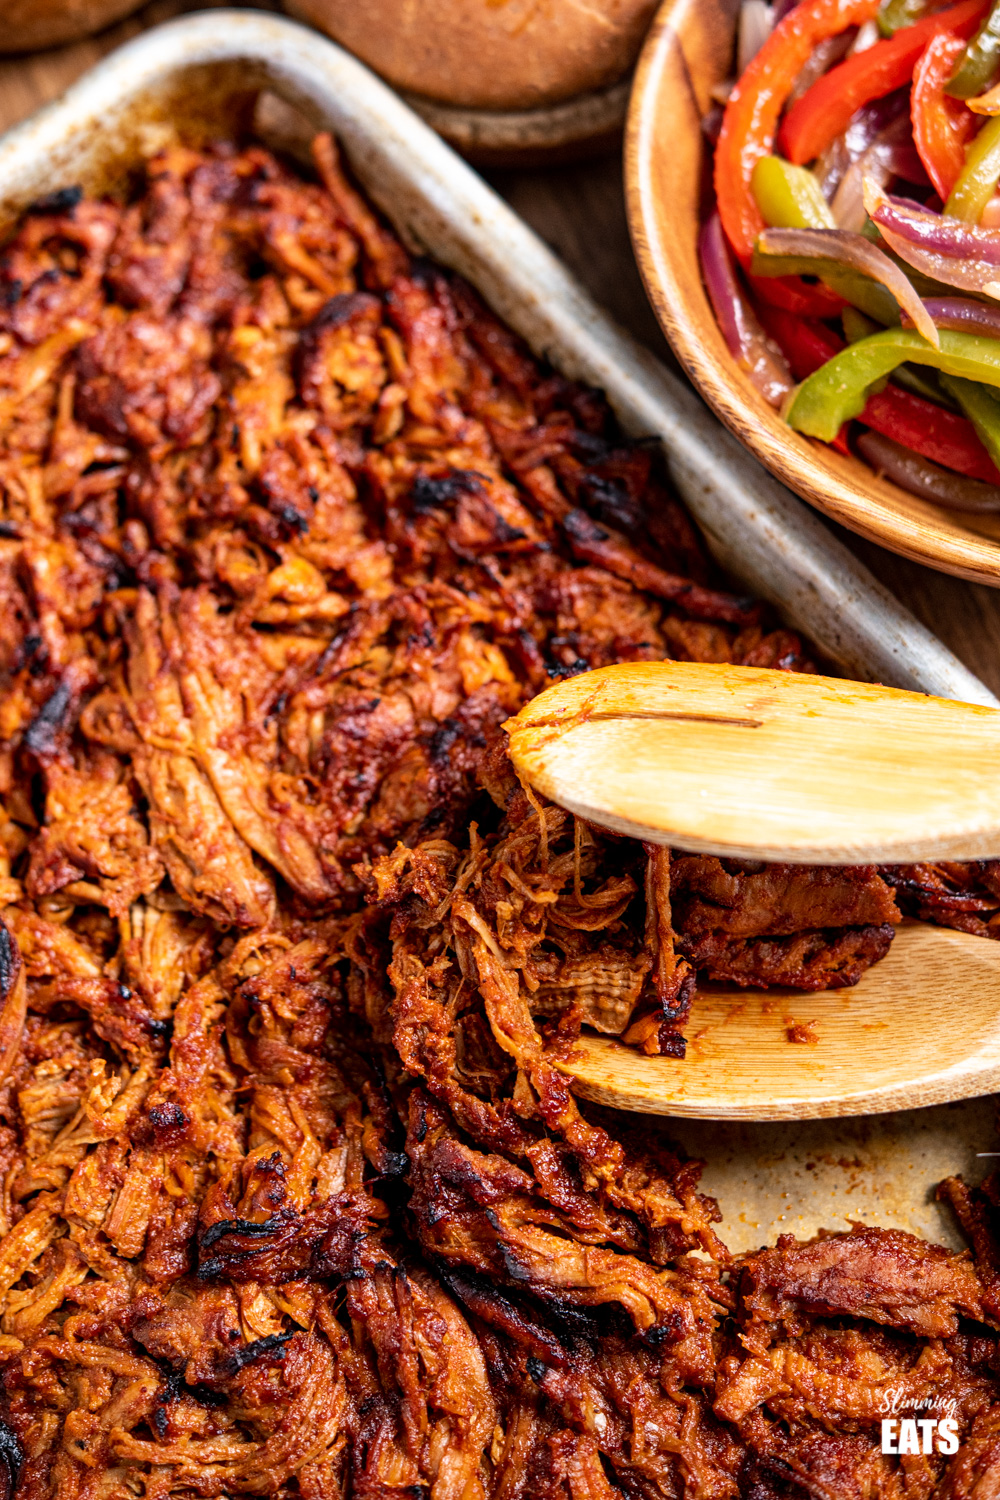 slow cooker pulled pork on baking tray with wooden tonges and bowl of peppers and onion